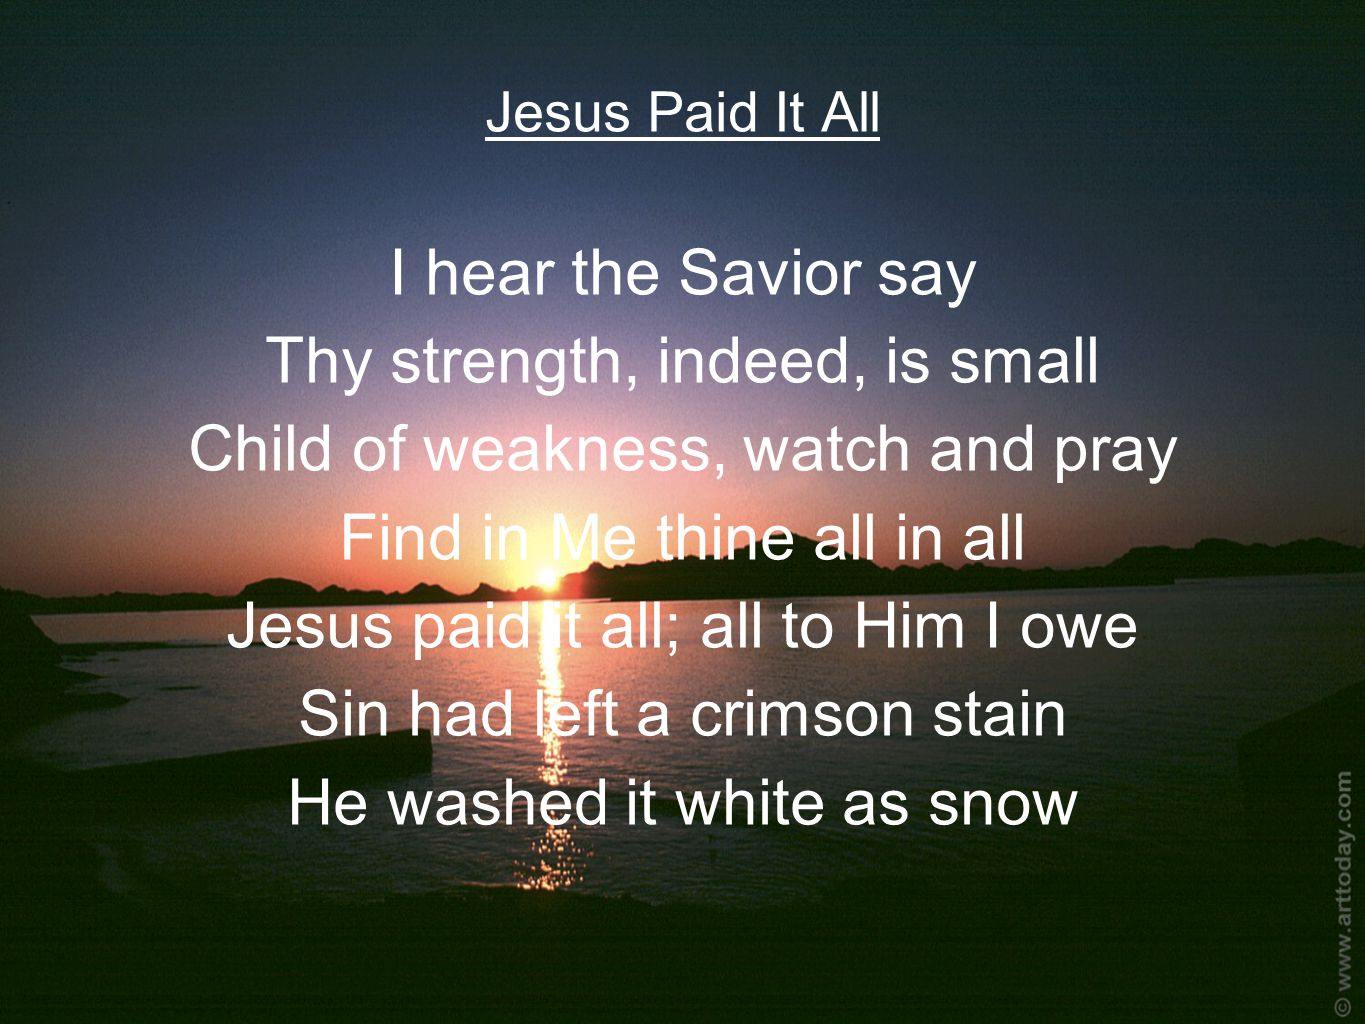 Jesus Paid It All I hear the Savior say Thy strength, indeed, is small Child of weakness, watch and pray Find in Me thine all in all Jesus paid it all; all to Him I owe Sin had left a crimson stain He washed it white as snow